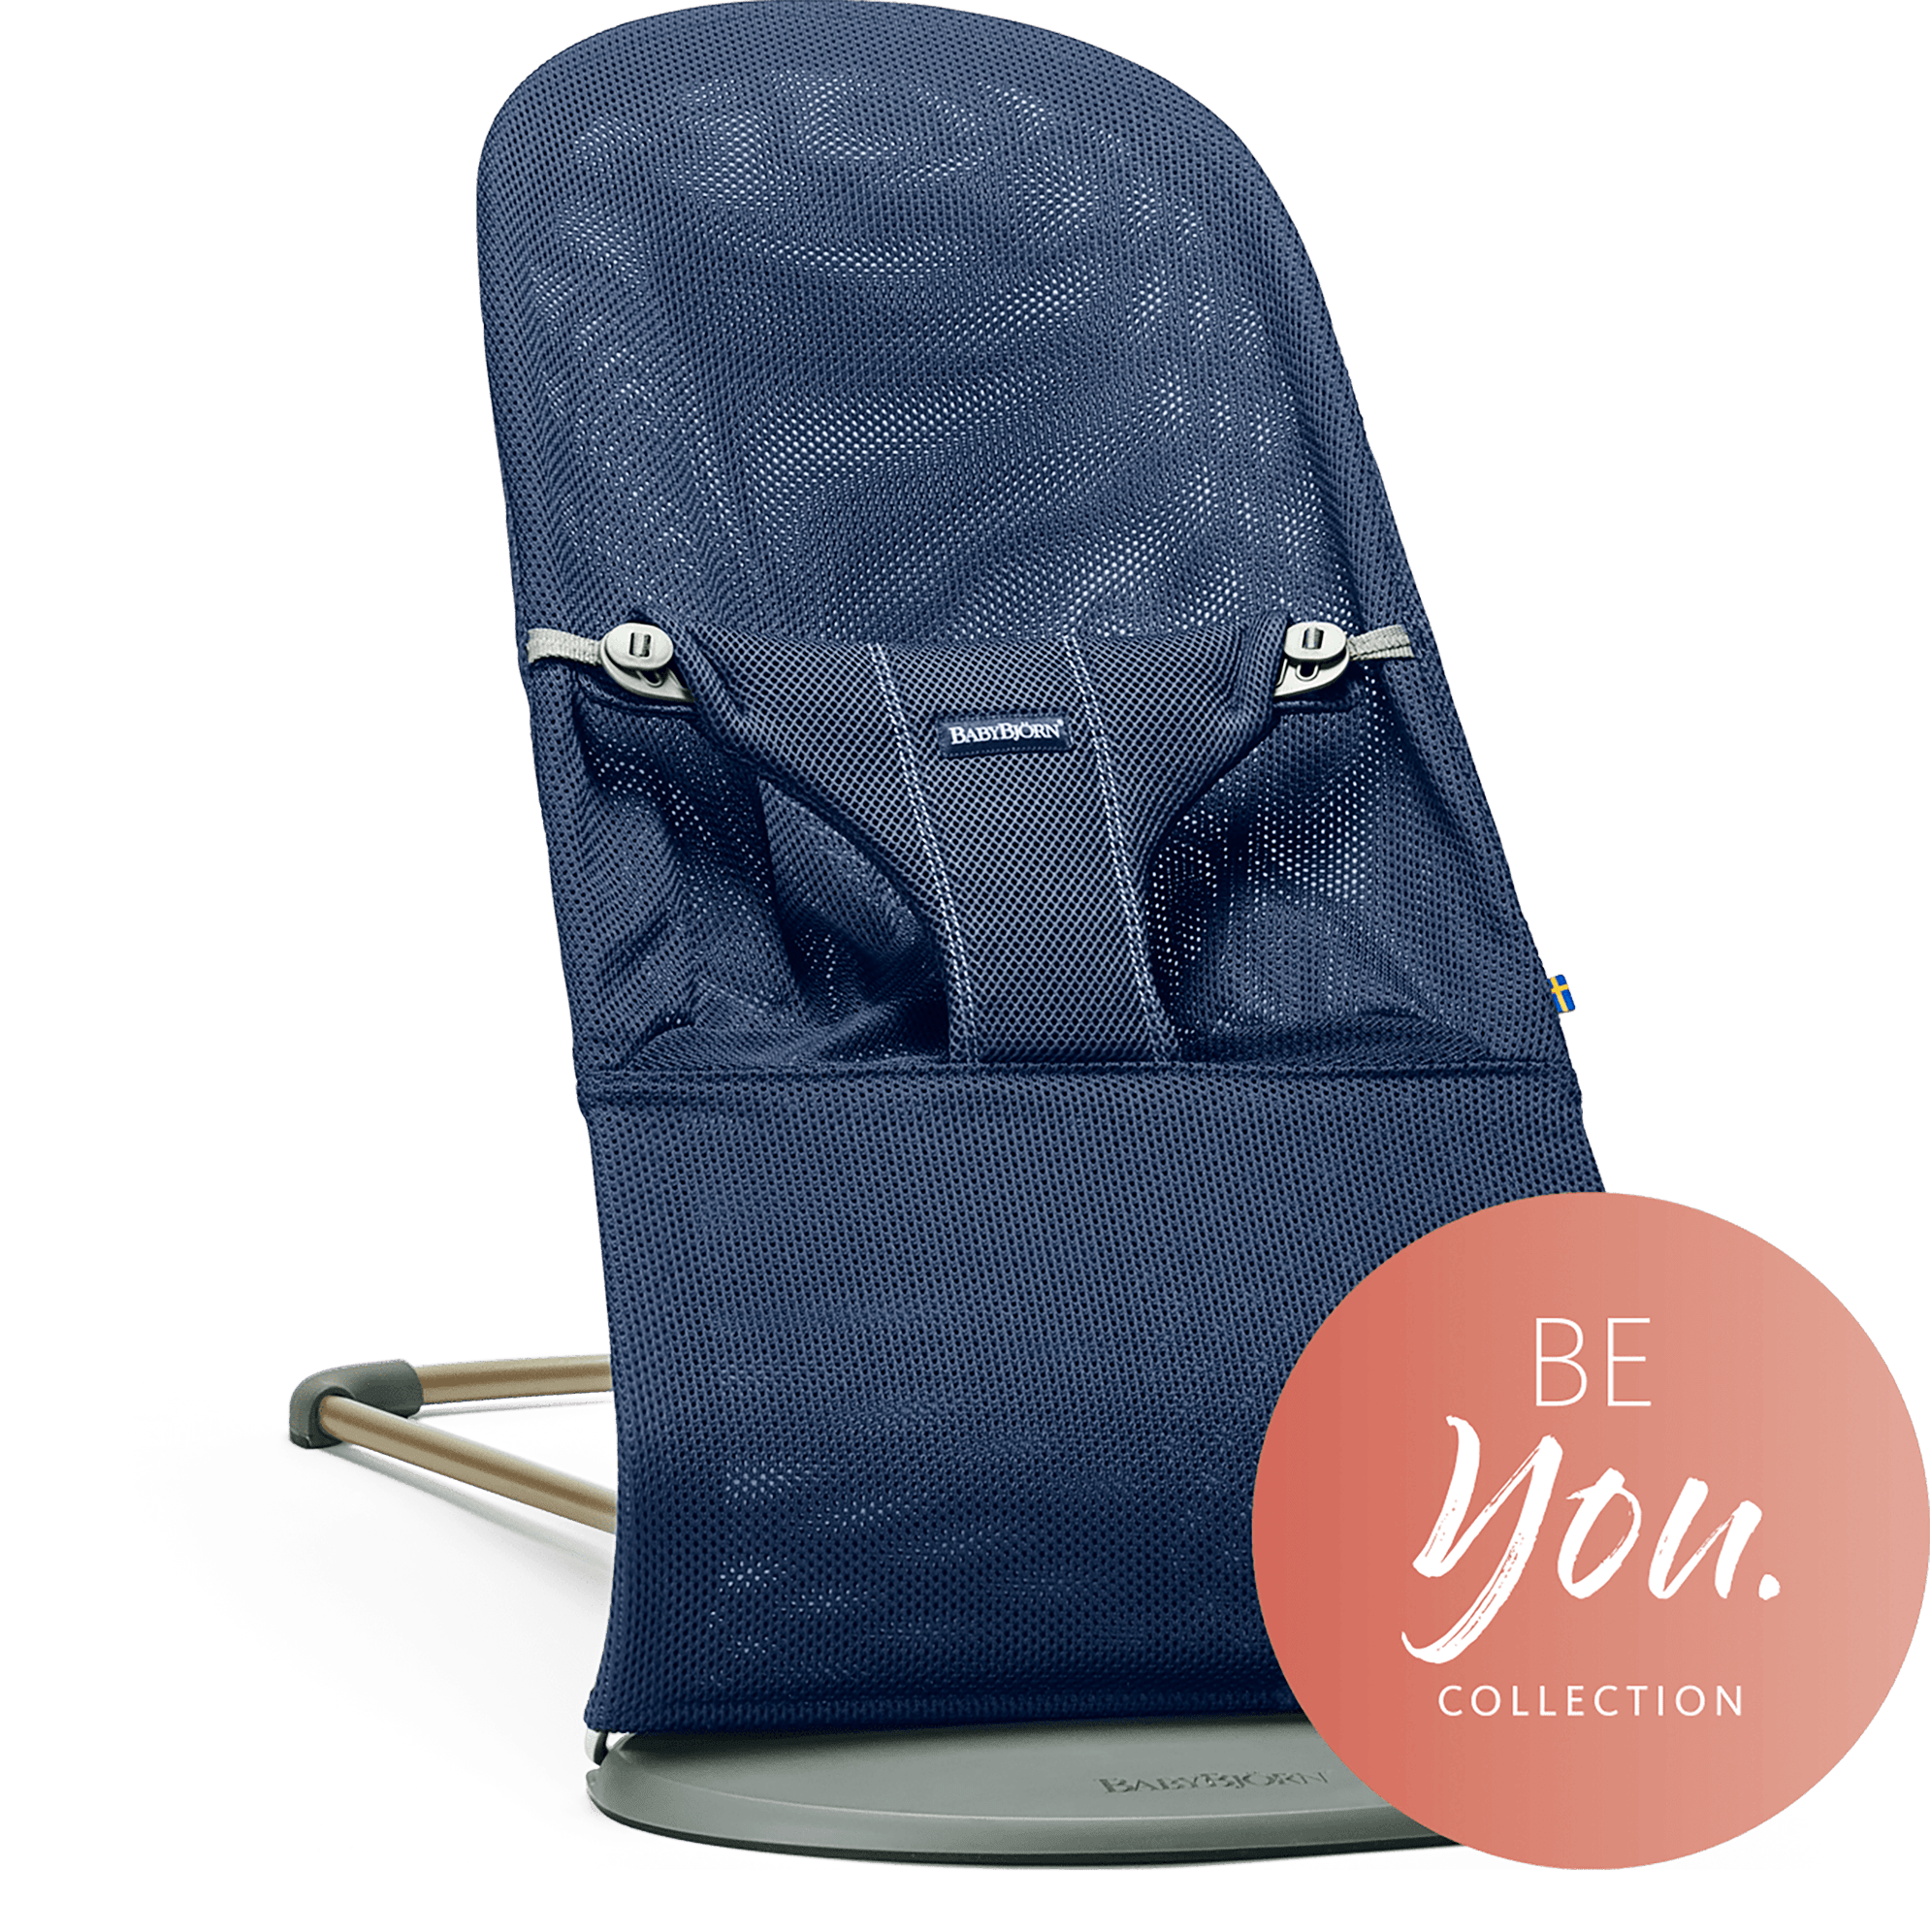 BABYBJÖRN Bouncer Bliss in navy blue mesh, an ergonomic and cozy baby bouncer with gentle rocking.